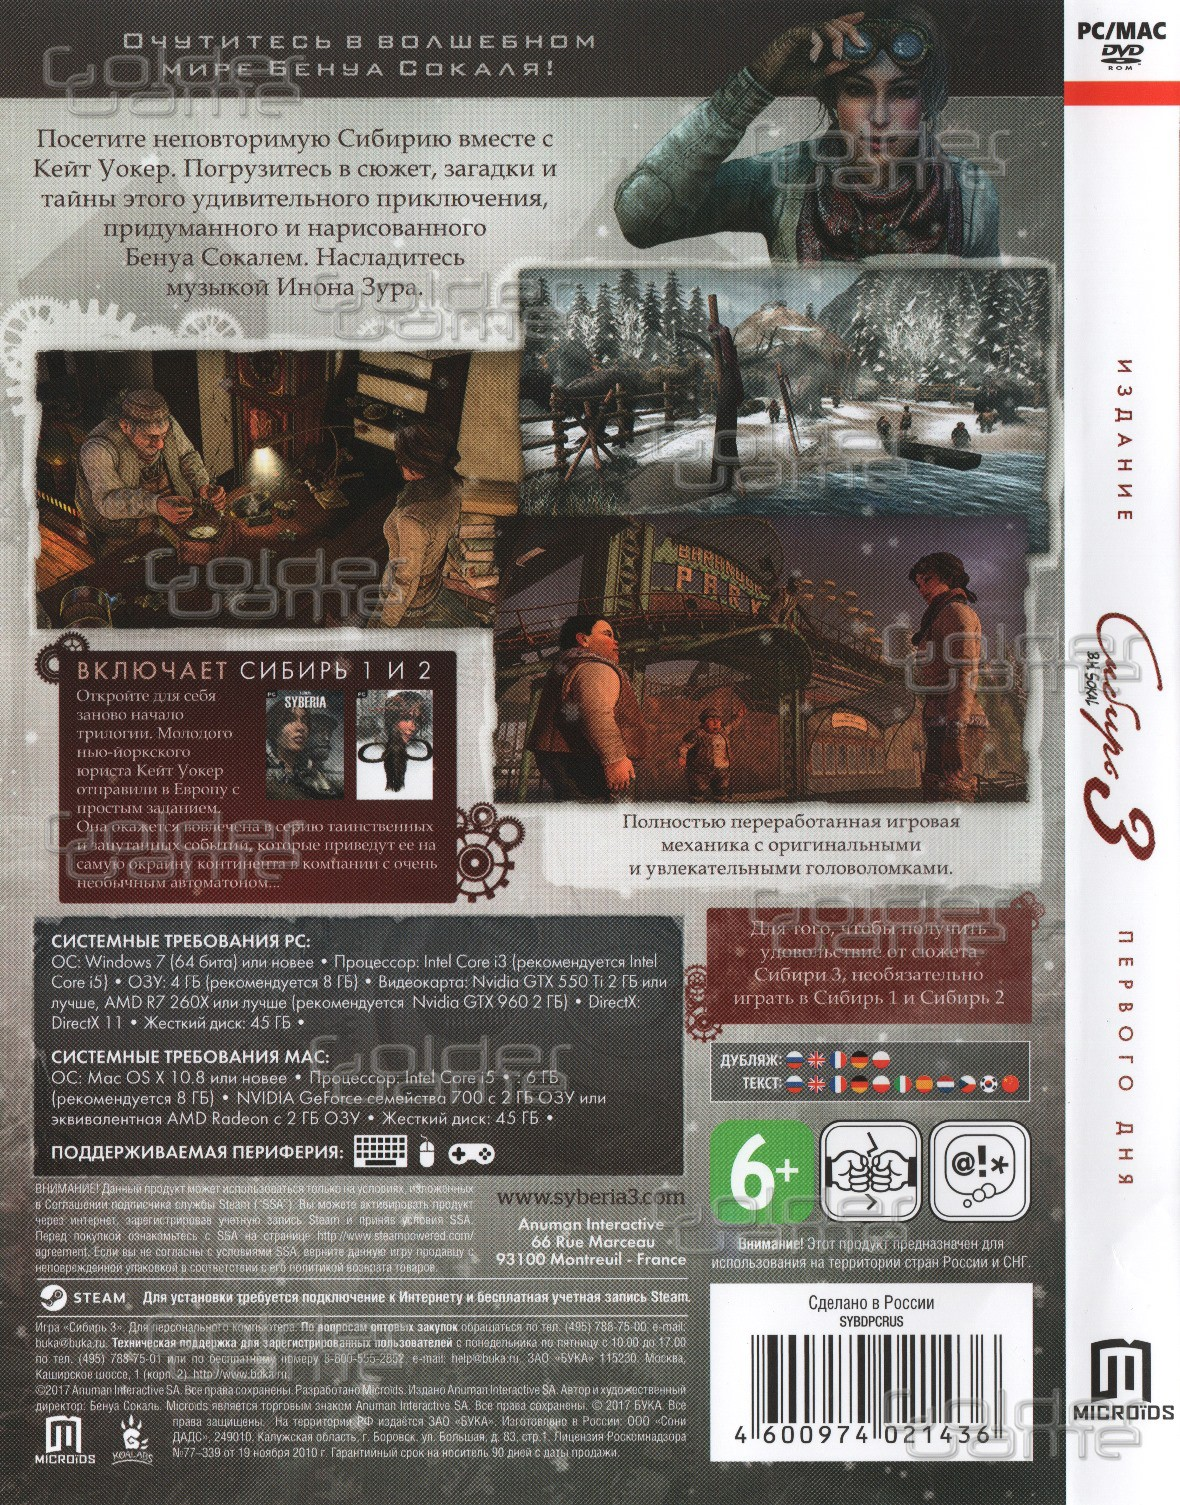 buy syberia 3 photo cd key steam and download